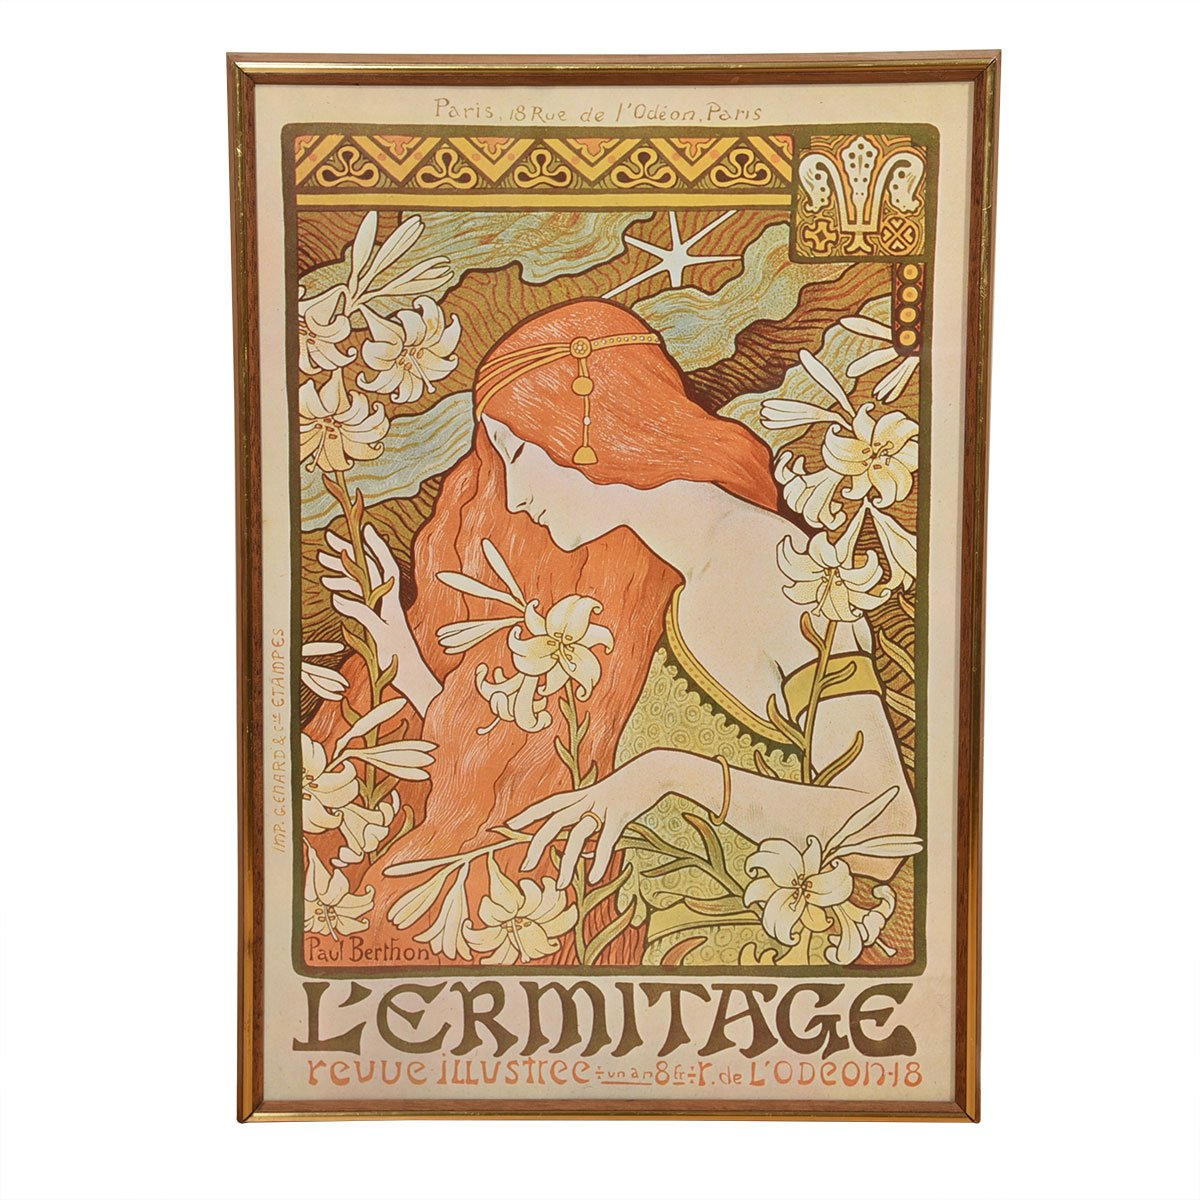 French Art Nouveau Poster, Cover Illustration for Revue Illustree 1897, Paul Berthon